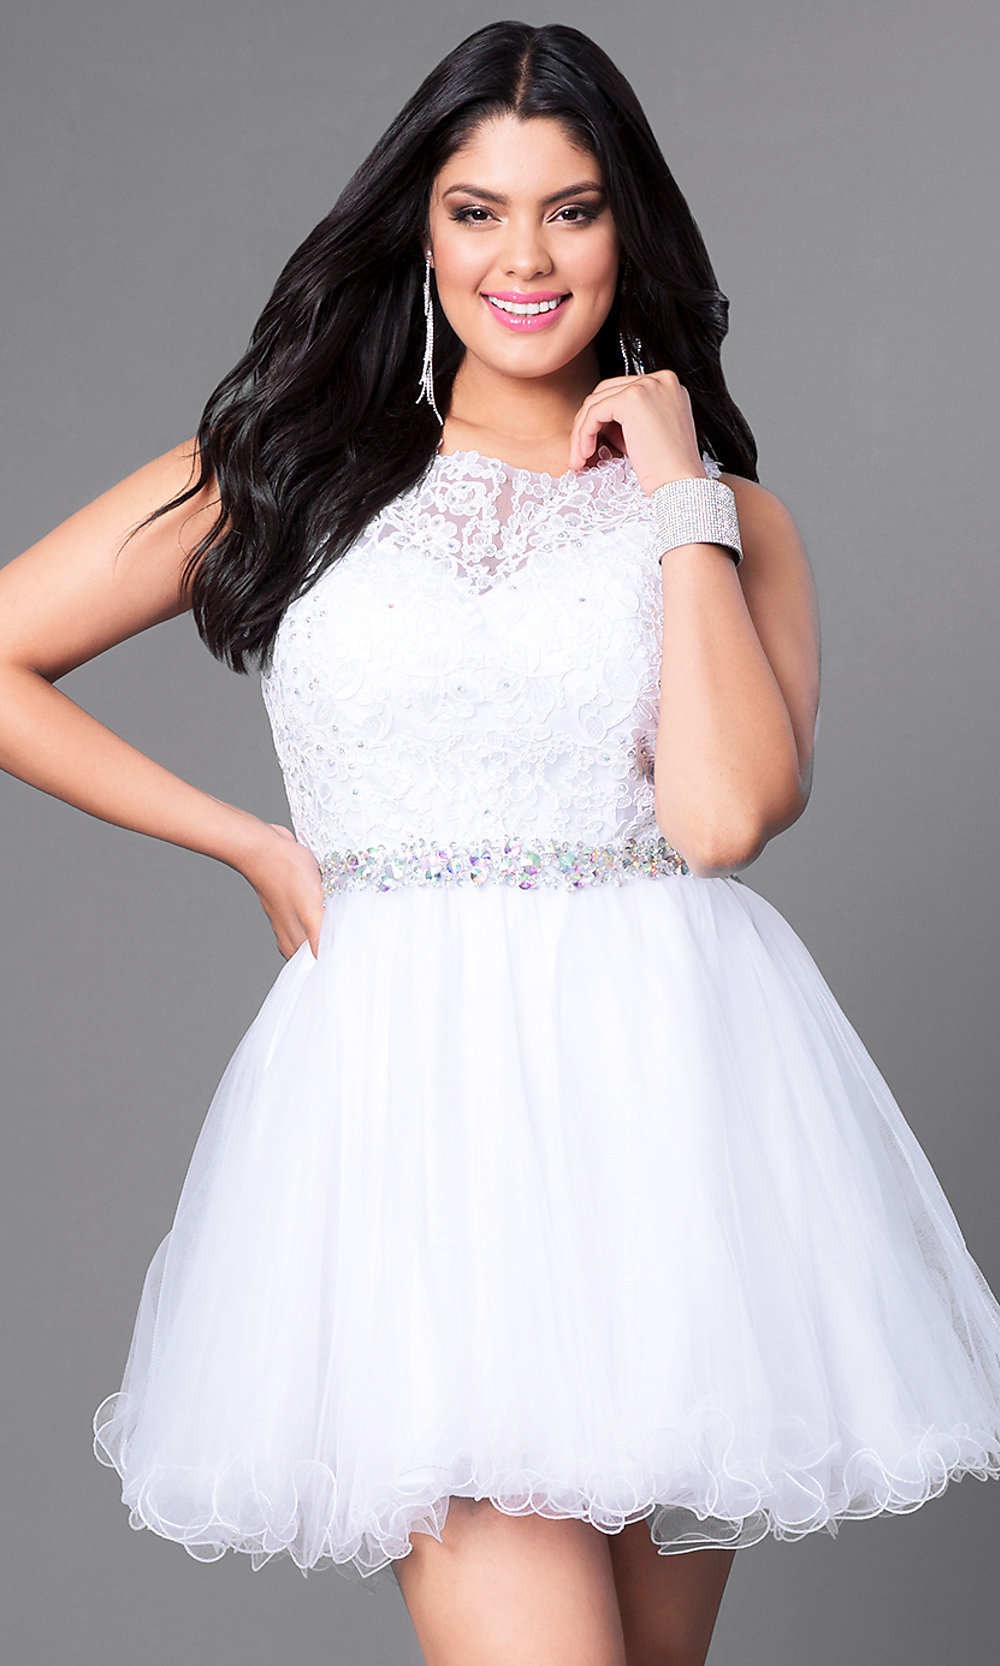 Plus-Size Tulle Short Prom Dress with Lace - PromGirl